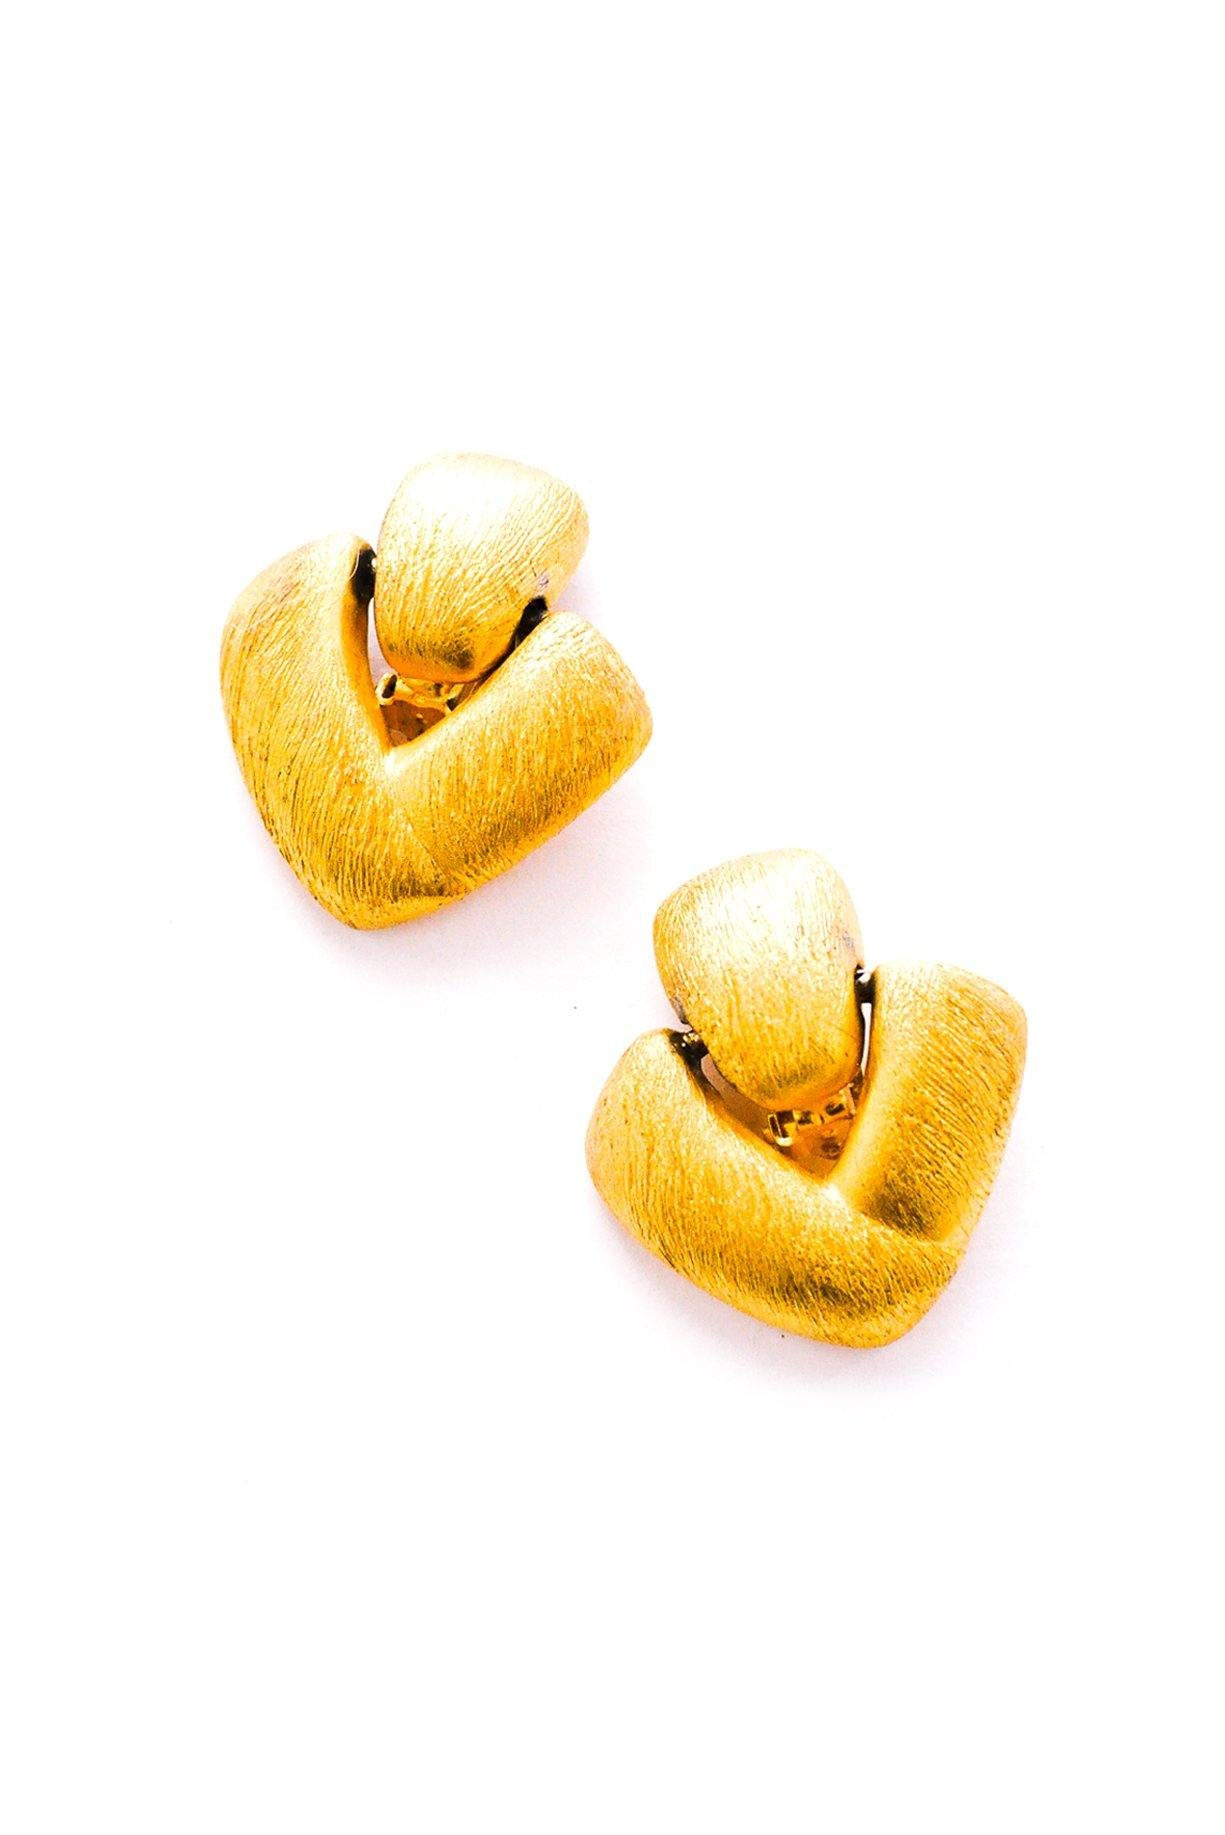 Vintage Anne Klein Door Knocker Clip-On Earrings from Sweet & Spark